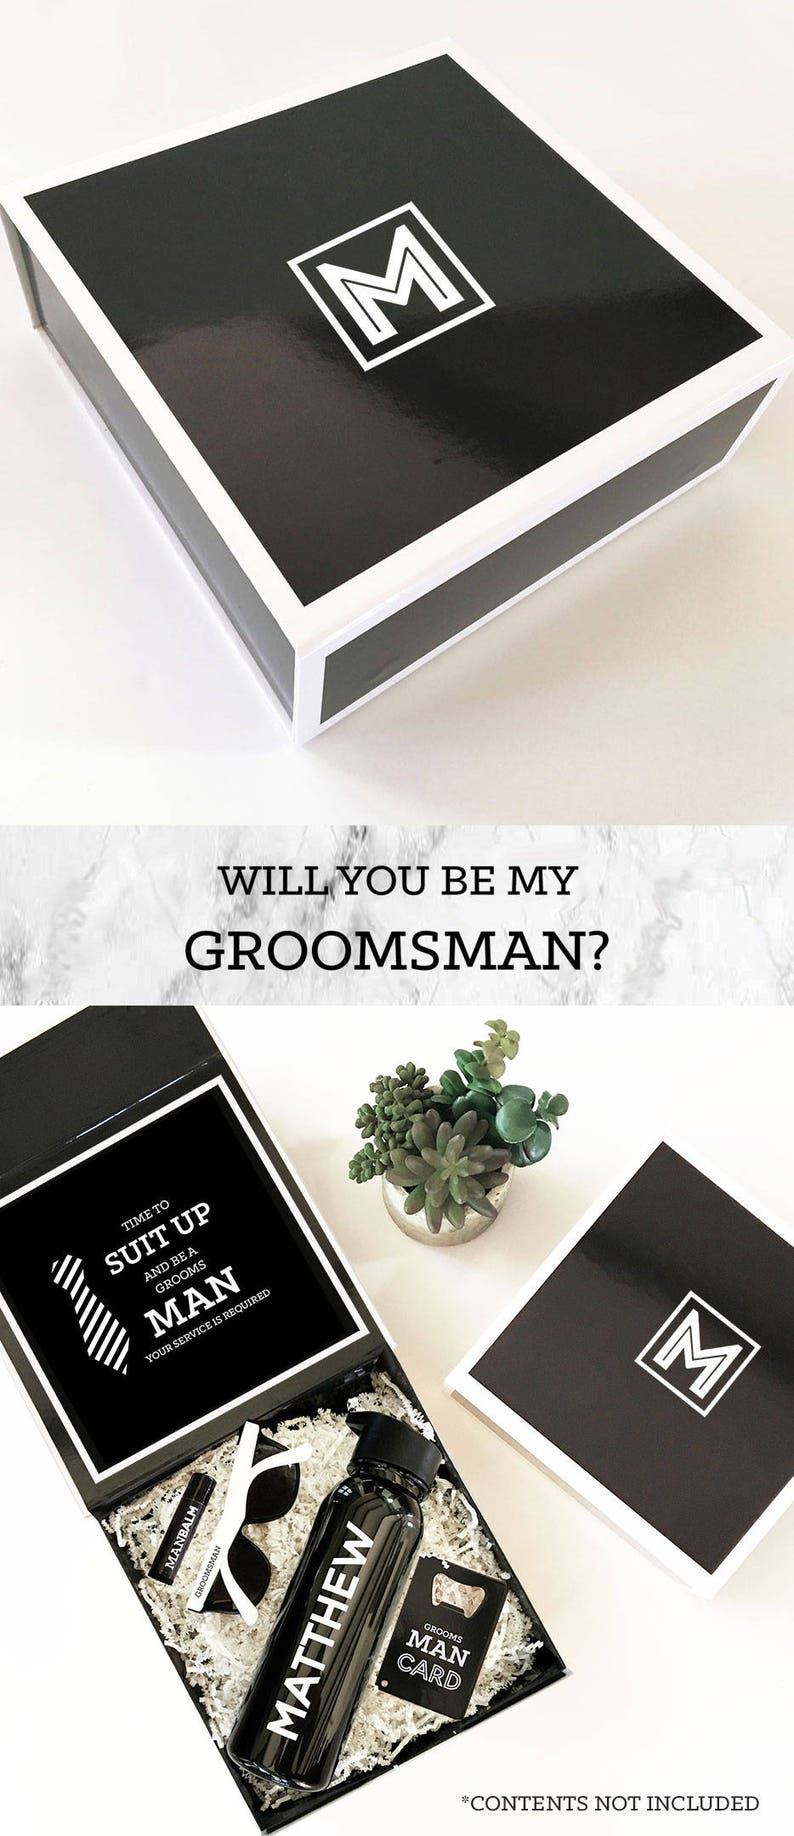 Will You Be My Groomsman Box Groomsmen Gift Groomsmen Proposal Groomsman Gift Box Monogram Gifts For Men Eb3193bpw Empty Inside